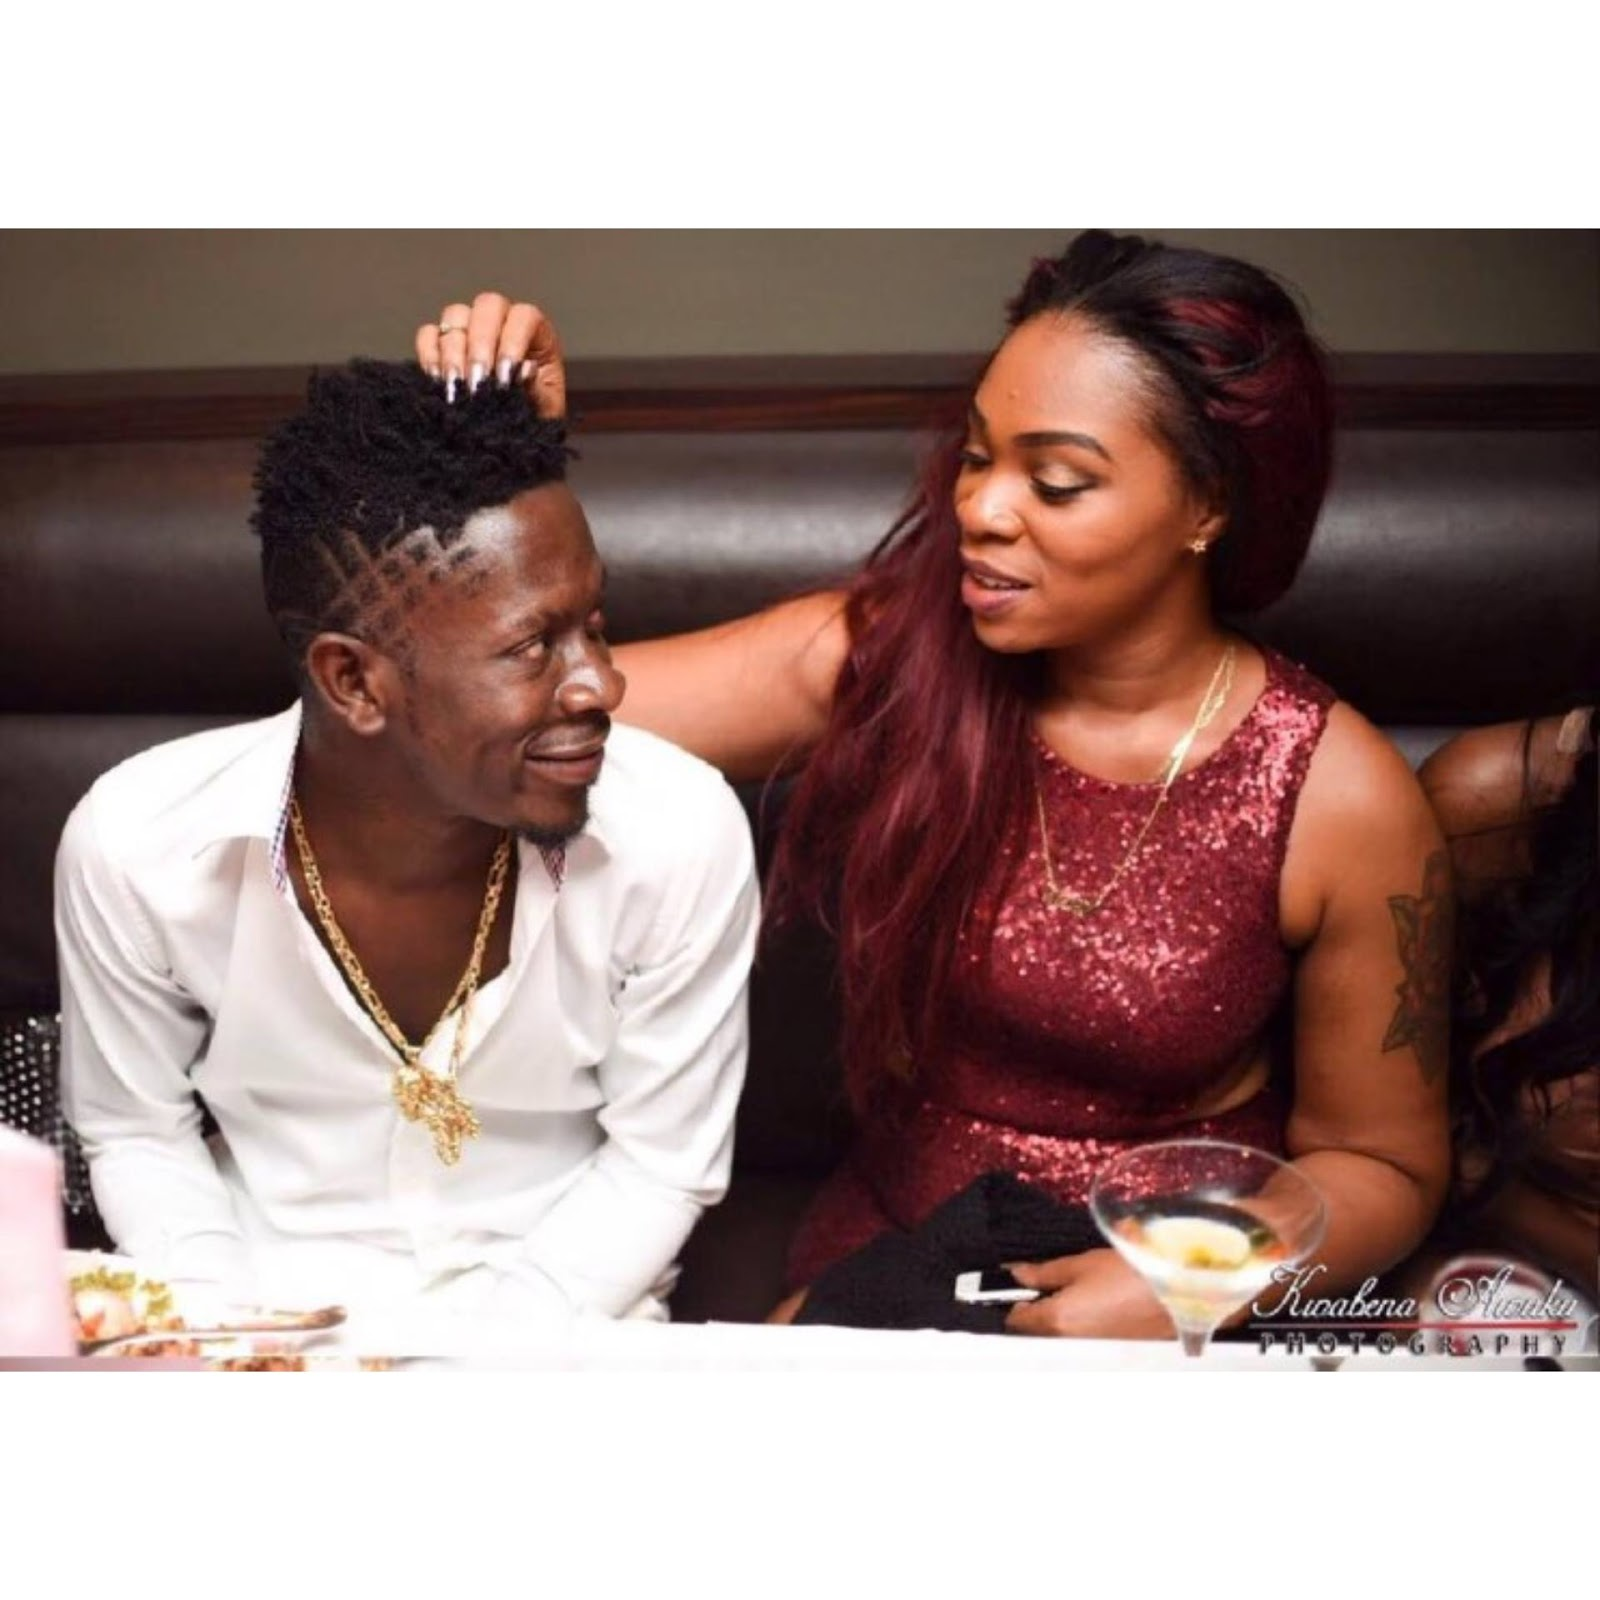 Revealed Video: Real Reason For Shatta Wale, Michy Break-up.